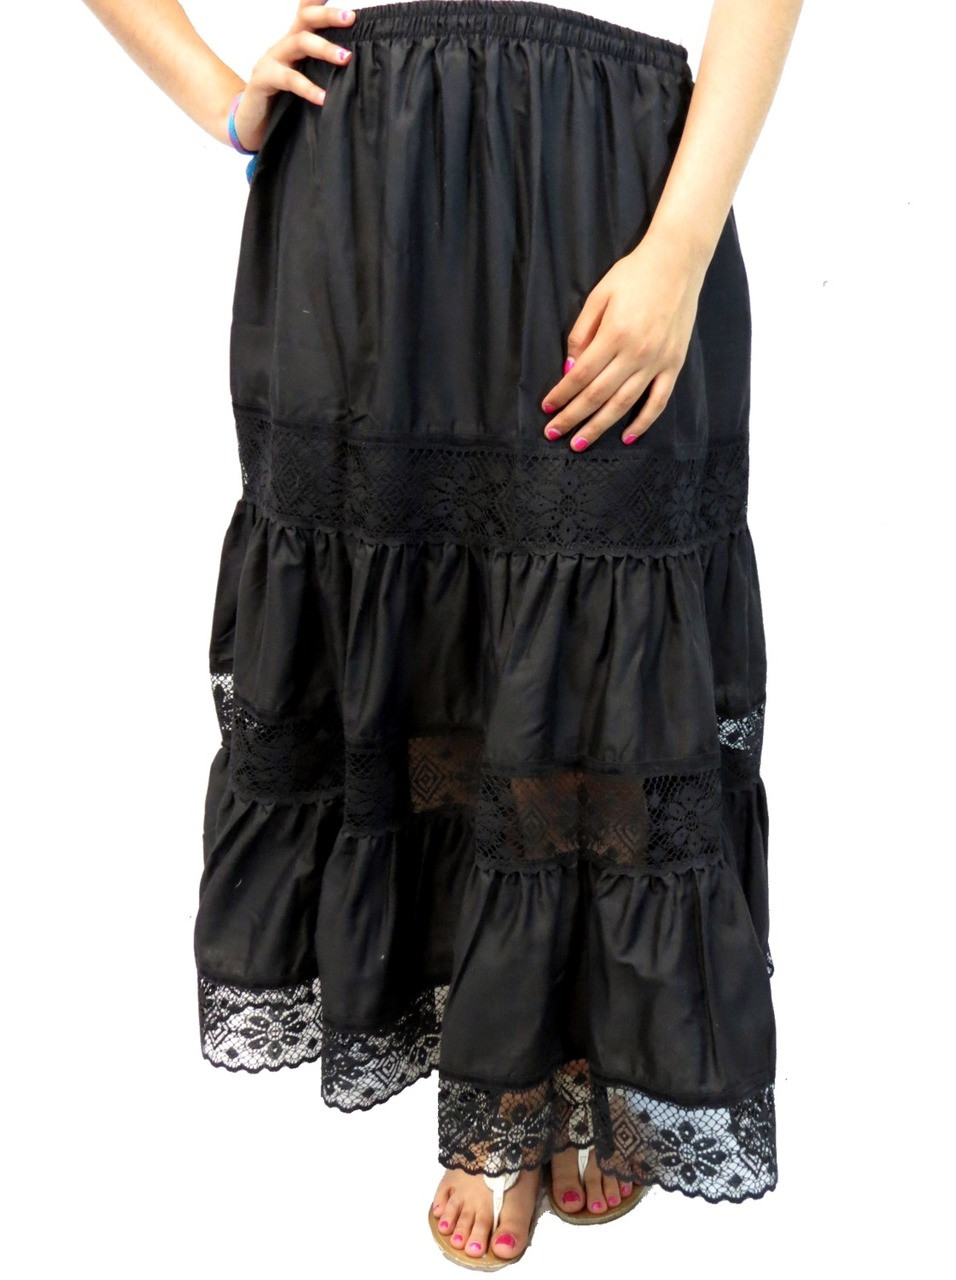 Mexican Skirt With Lace One Size Black